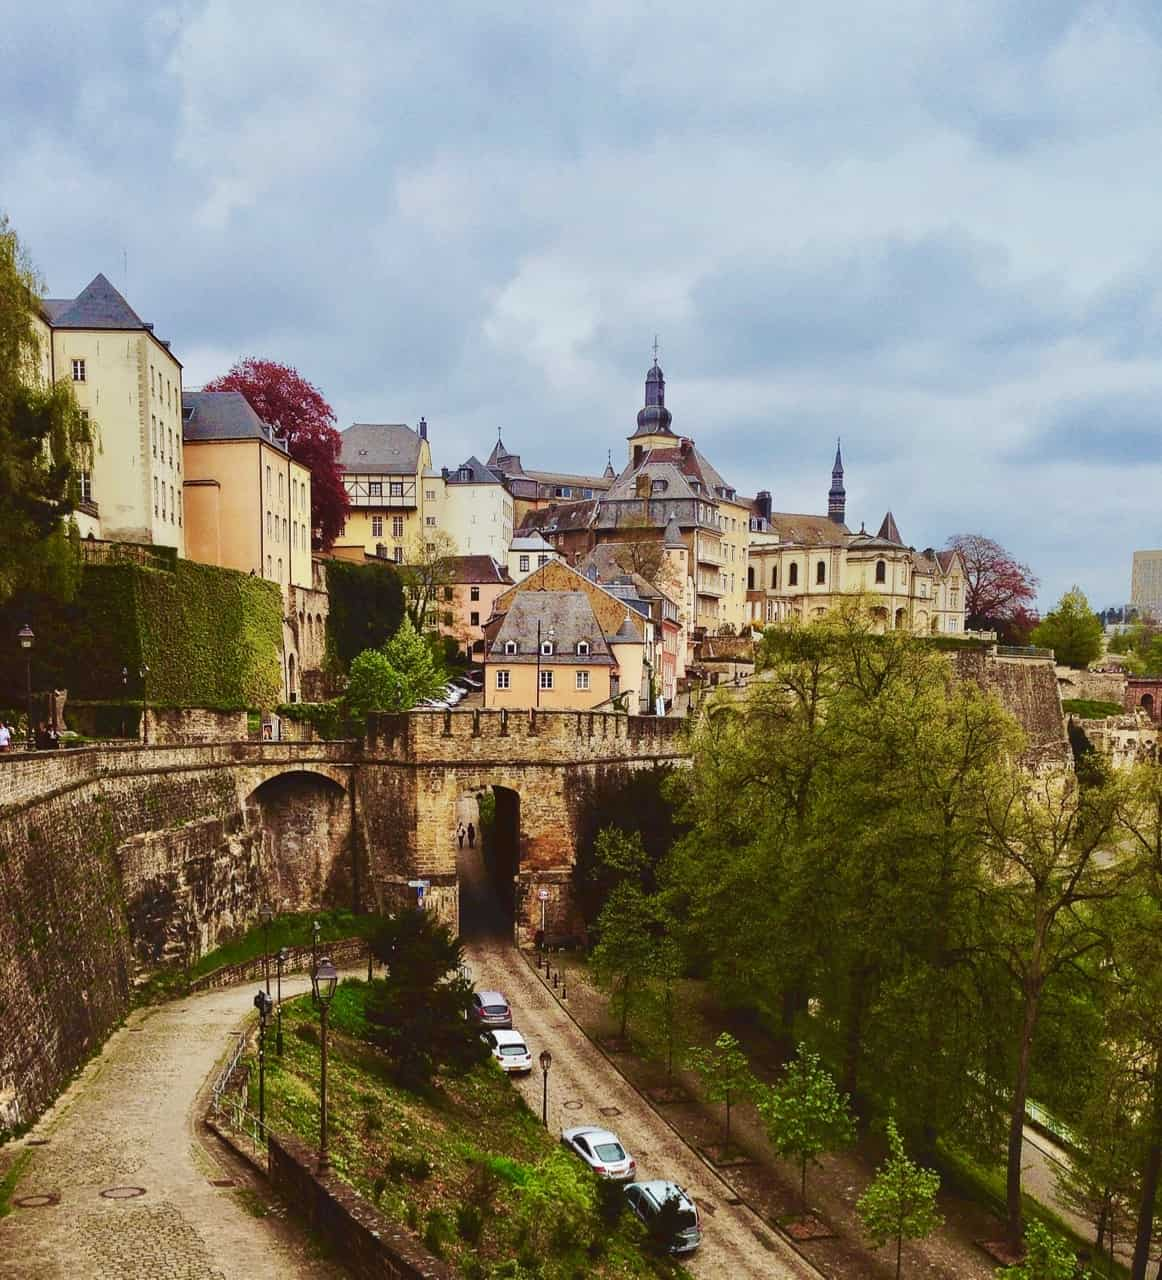 Supported by Tokeny, Property Token SA in Luxembourg Launches Security Token Offering Backed by Real Estate